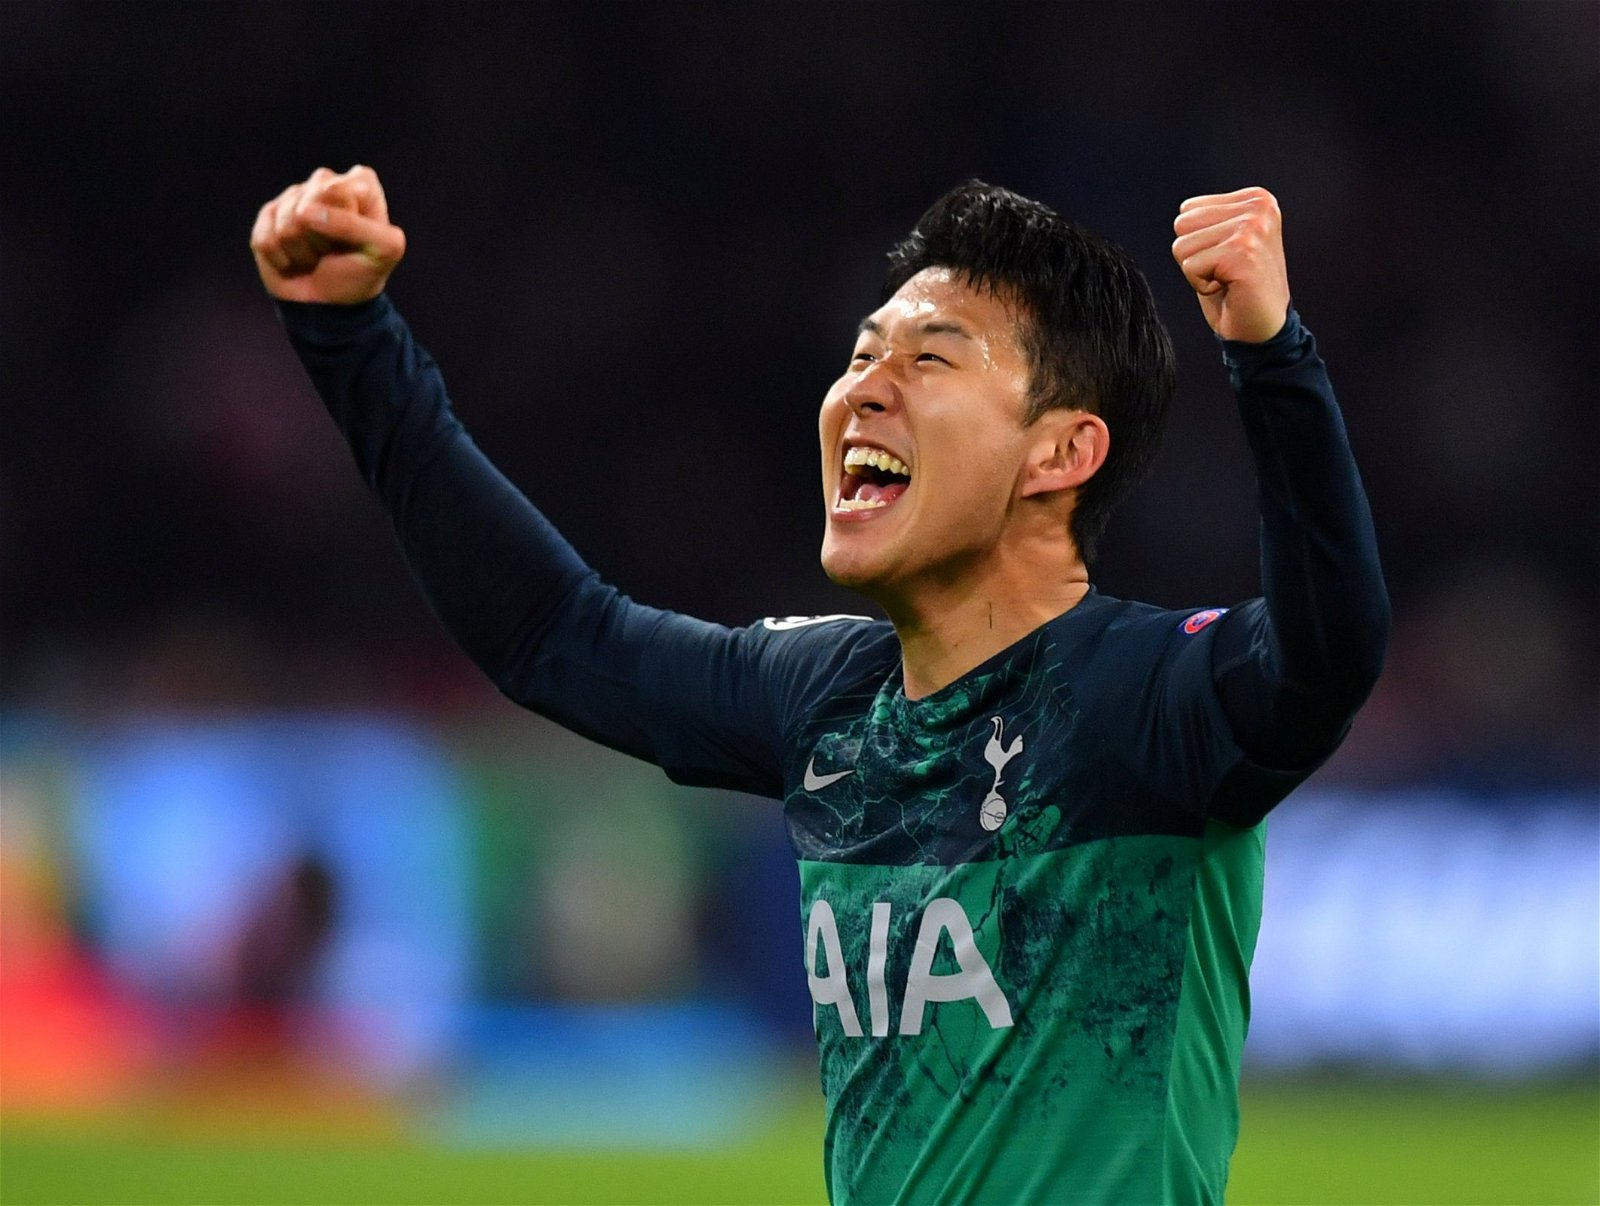 Heung min Son - Sissoko v Henderson, semi-final heroes: How the Champions League final could be decided